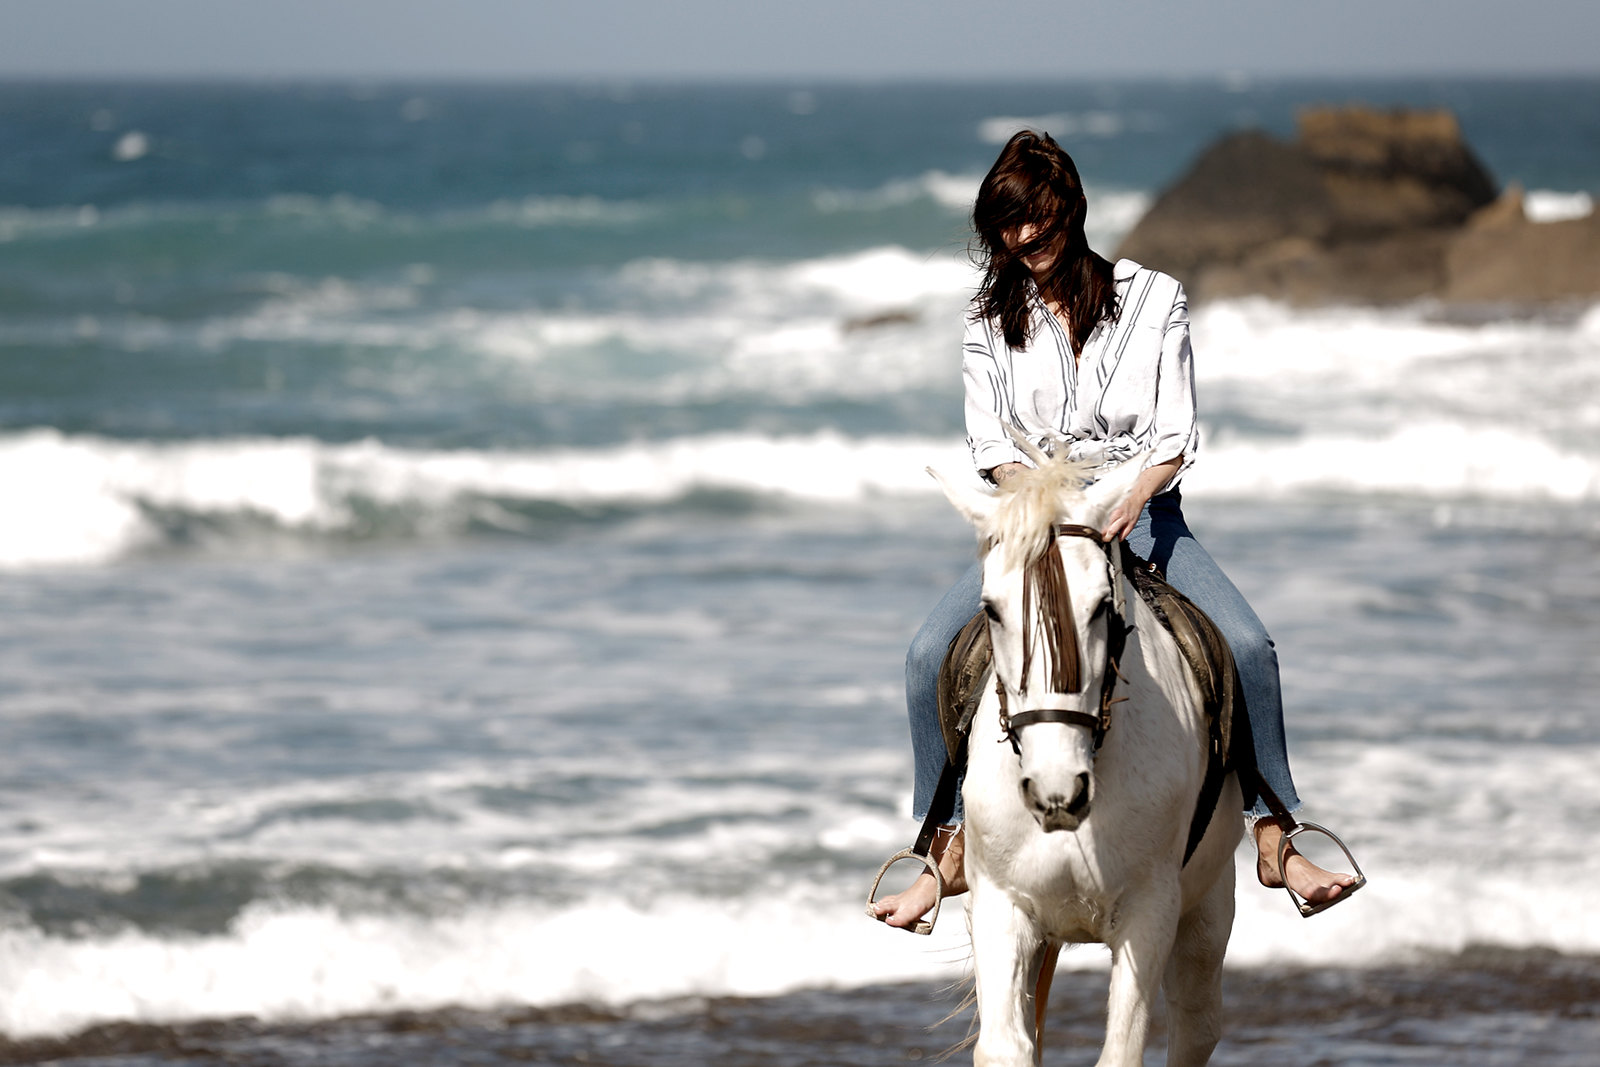 riding fuerte fuerteventura horse white reiten ausritt beach water ocean waves wild freedom happiness vila stripe blouse levi's jeans girl dreaming cats & dogs fashionblog modeblogger ricarda schernus berlin styleblog deutschland 2